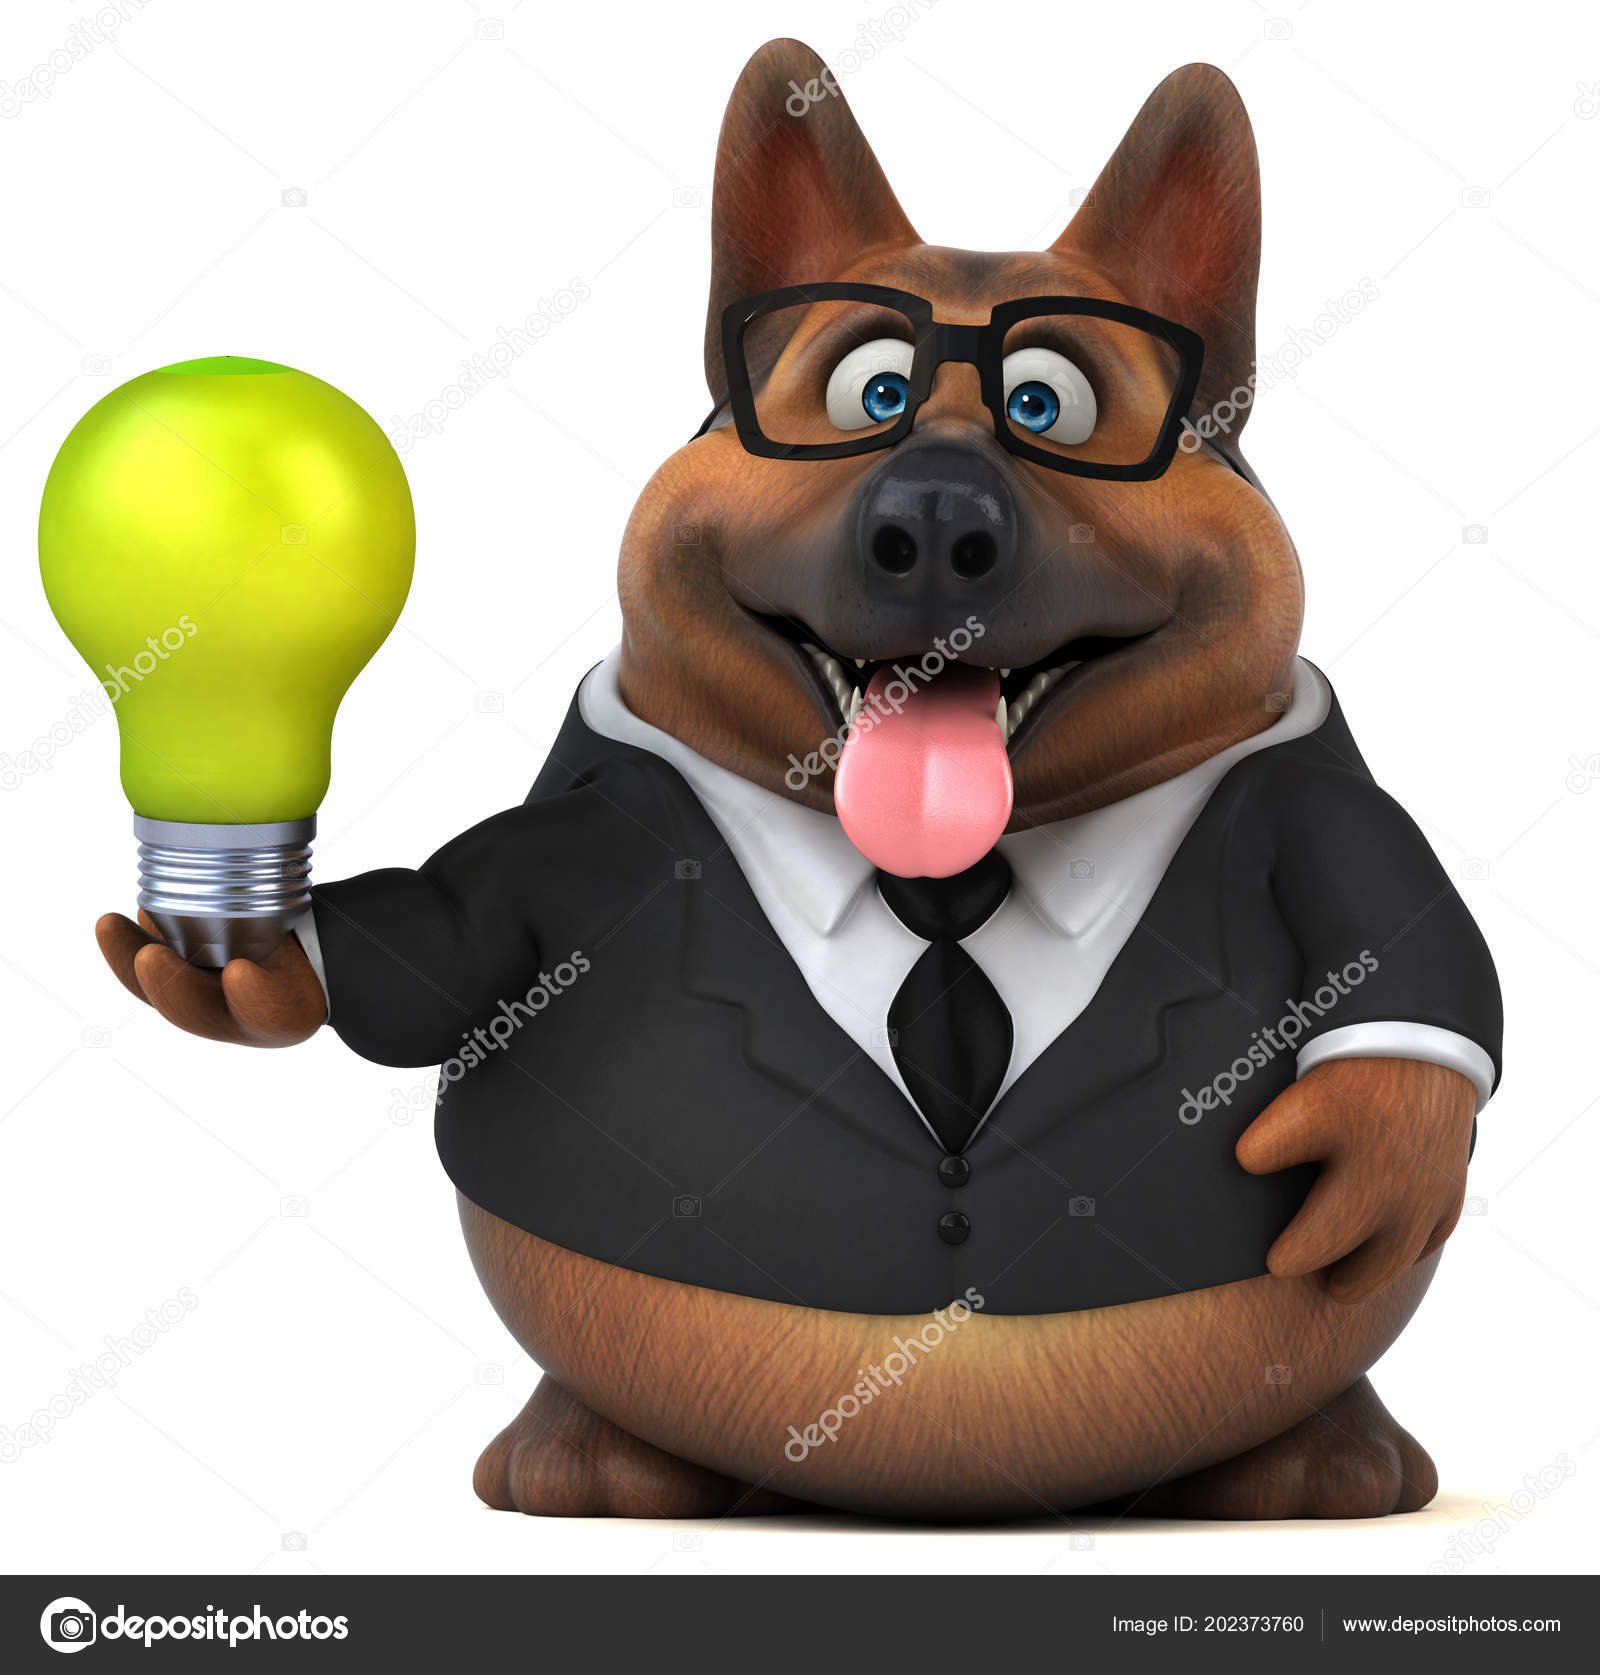 Fun Cartoon Character Light Bulb Illustration Stock Photo C Julos